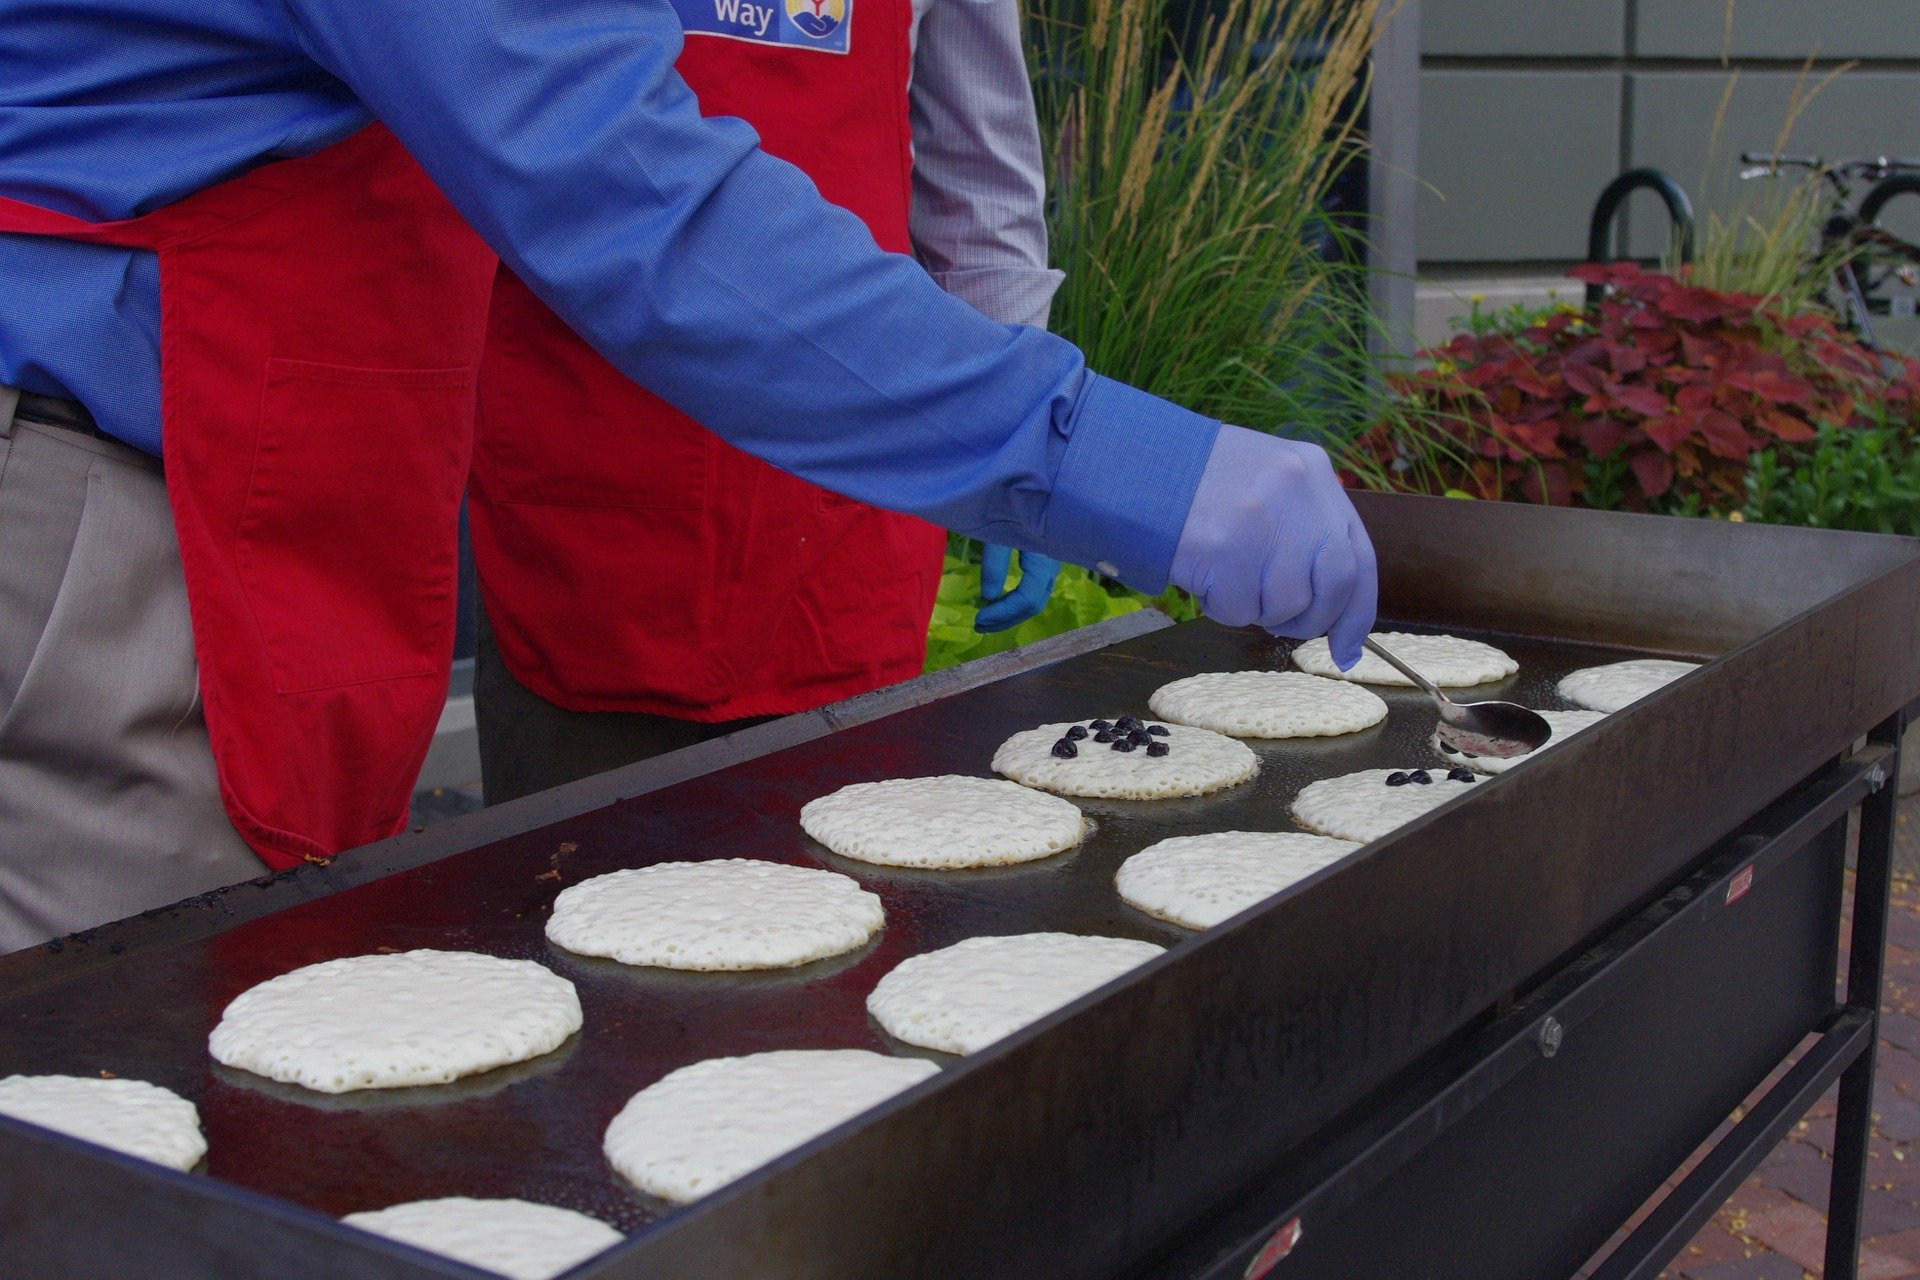 Pancakes on a grill.